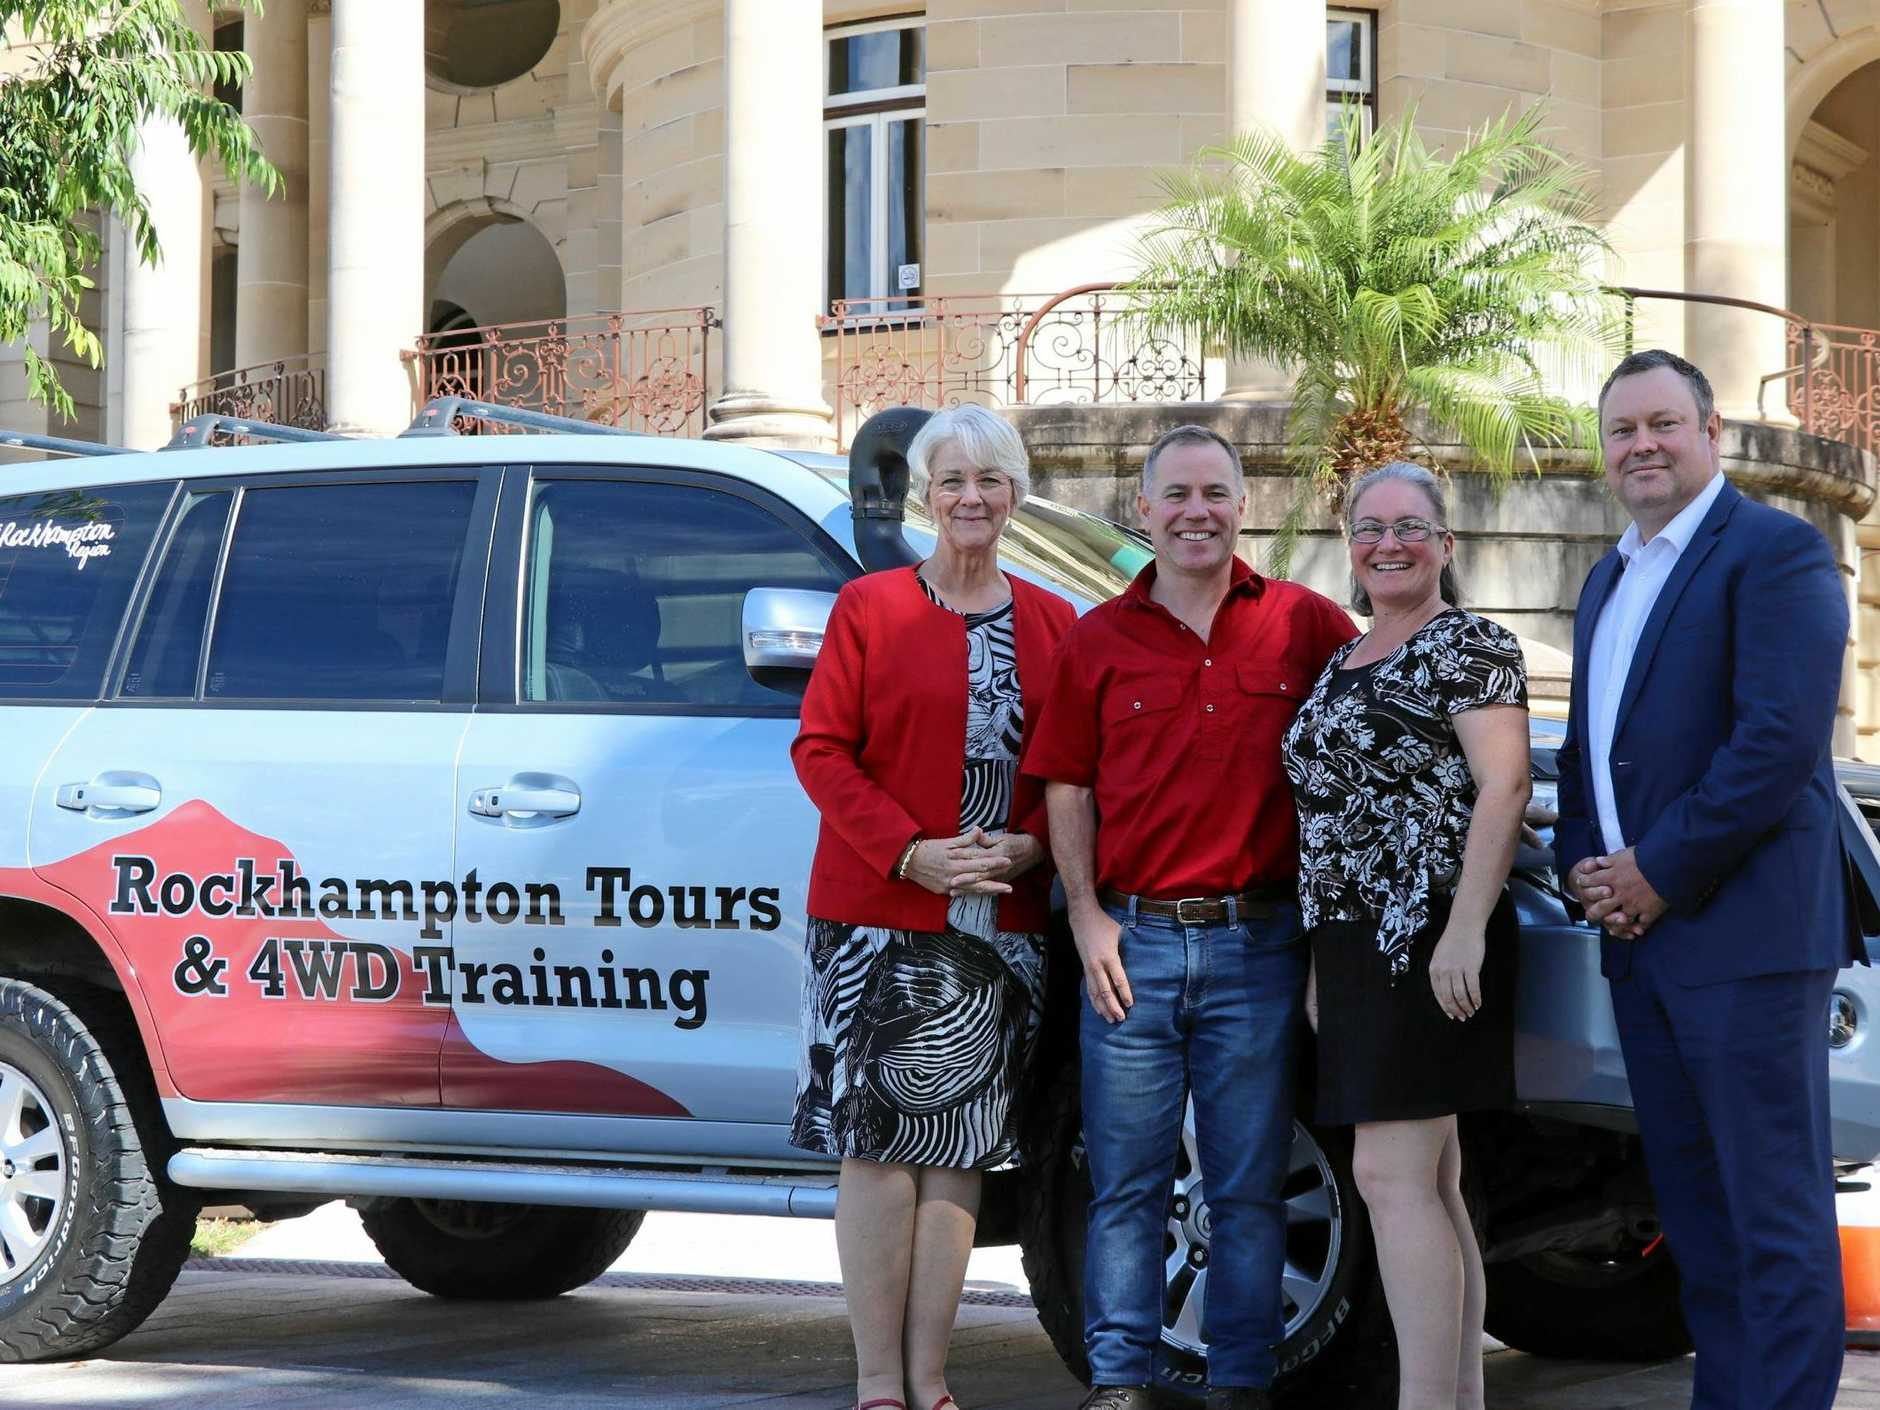 DISCOVER : Pictured is Mayor Strelow, Tony Davys, Helen Davys and Wade Clark from Advance Rockhampton, all excited about the launch of Rockhampton Tours and 4WD Training.